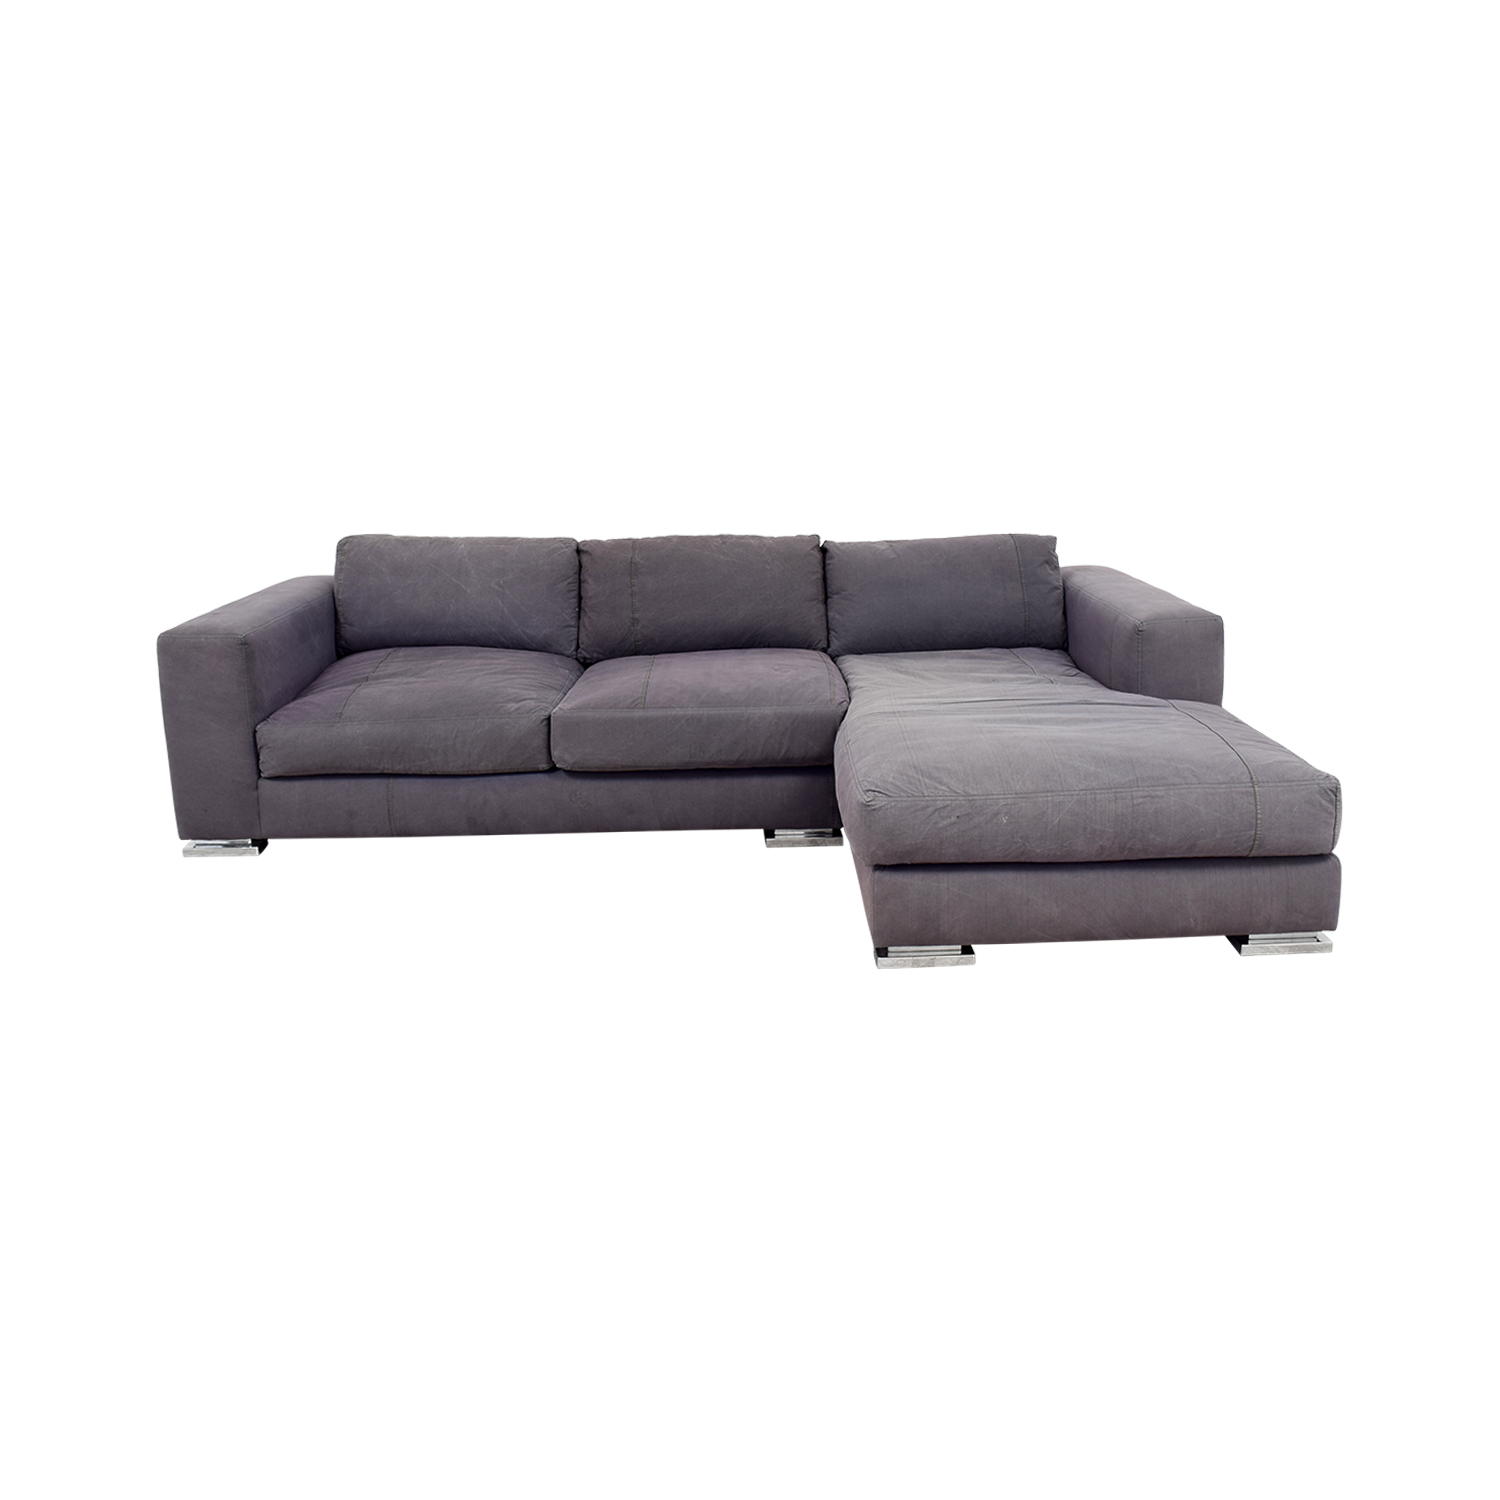 buy Environment Furniture Safia Sectional Grey Sofa Environment Furniture Sectionals